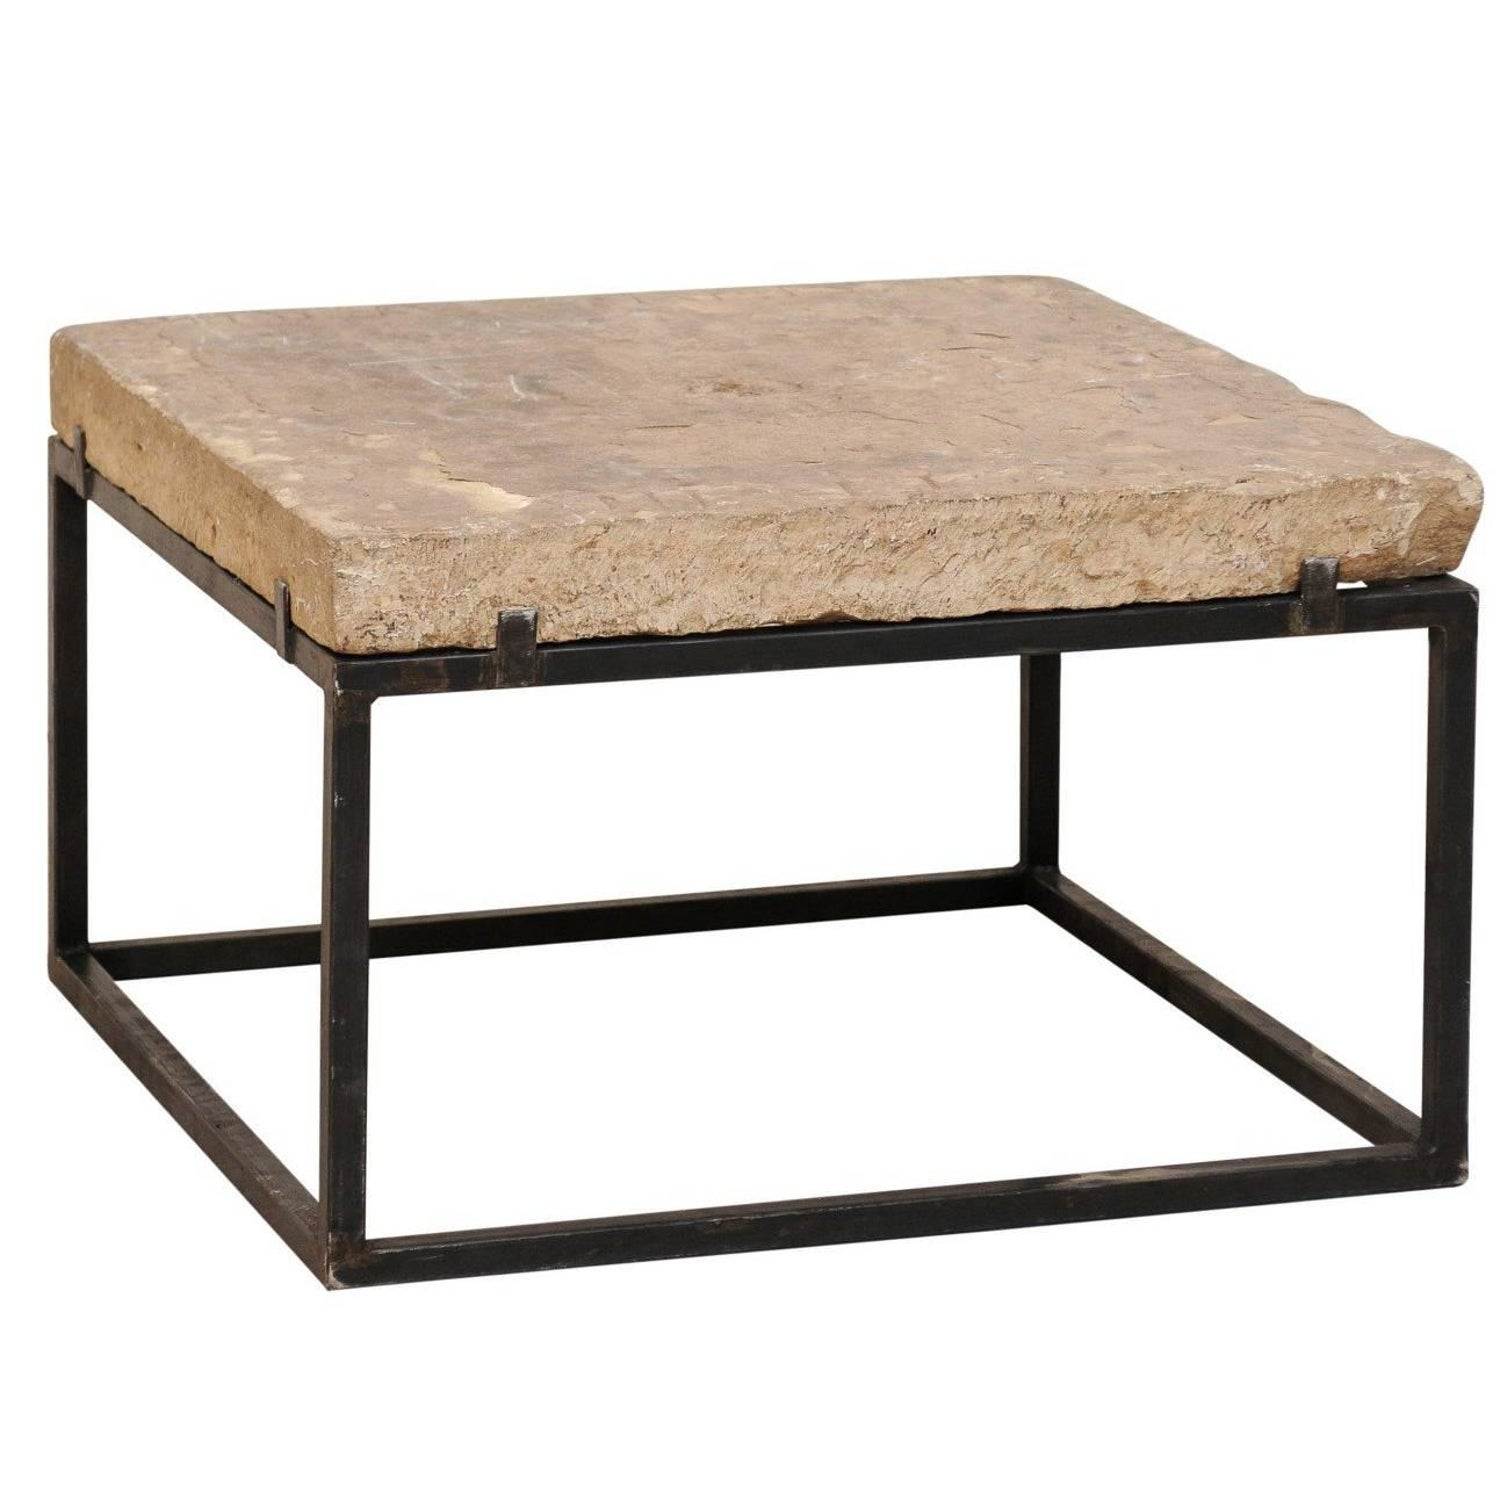 Gilt Metal Coffee side Table by Ferrocolor Spain at 1stdibs